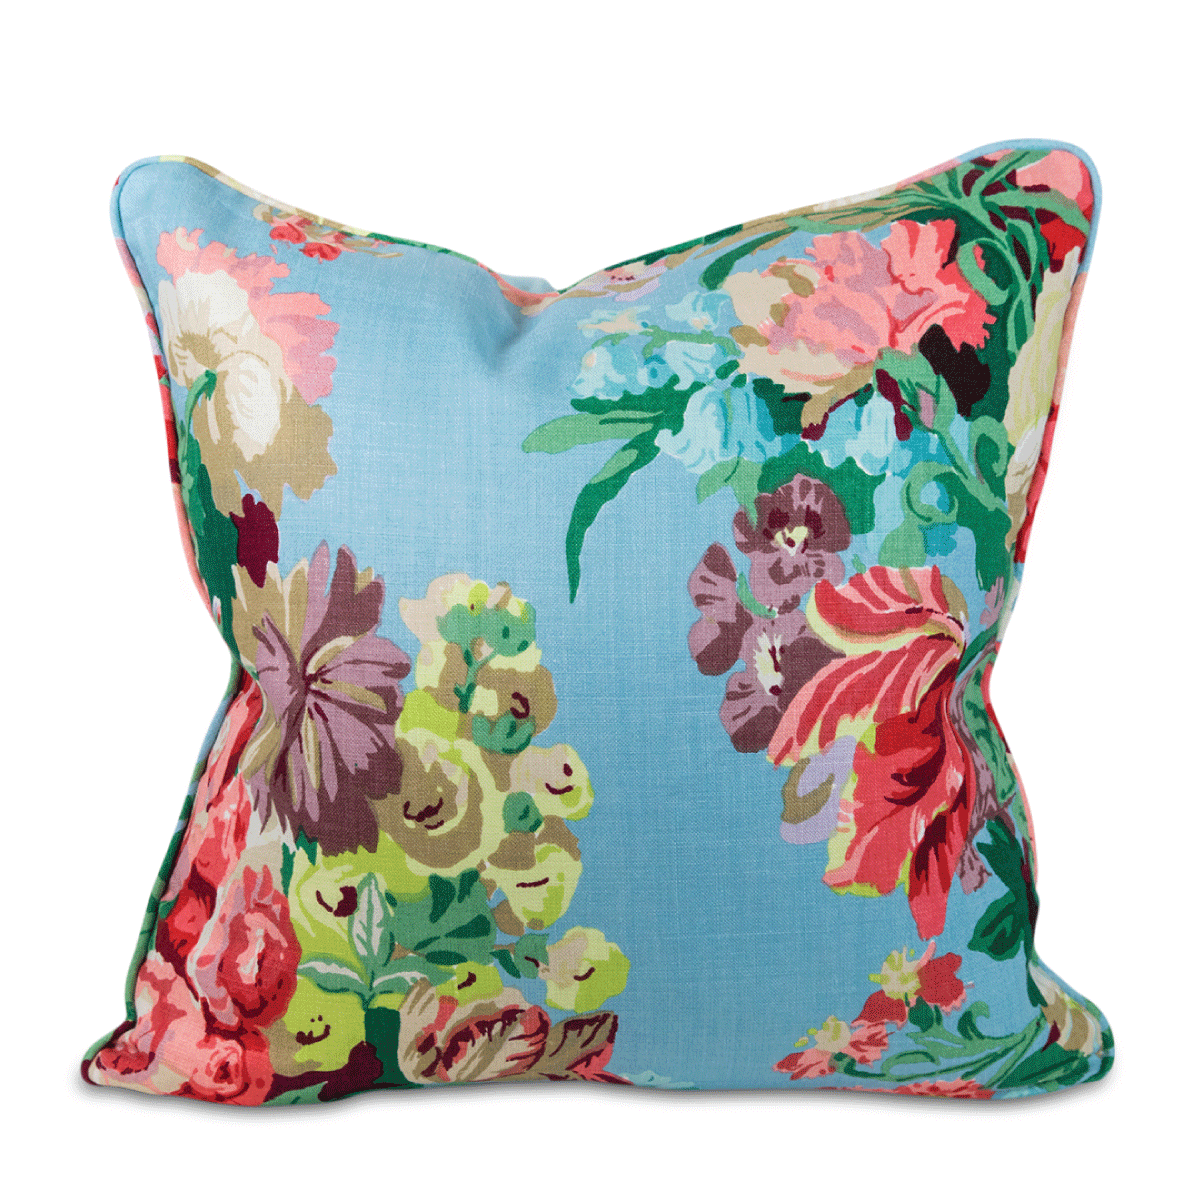 Greenbrier Floral Linen Pillow - Aqua